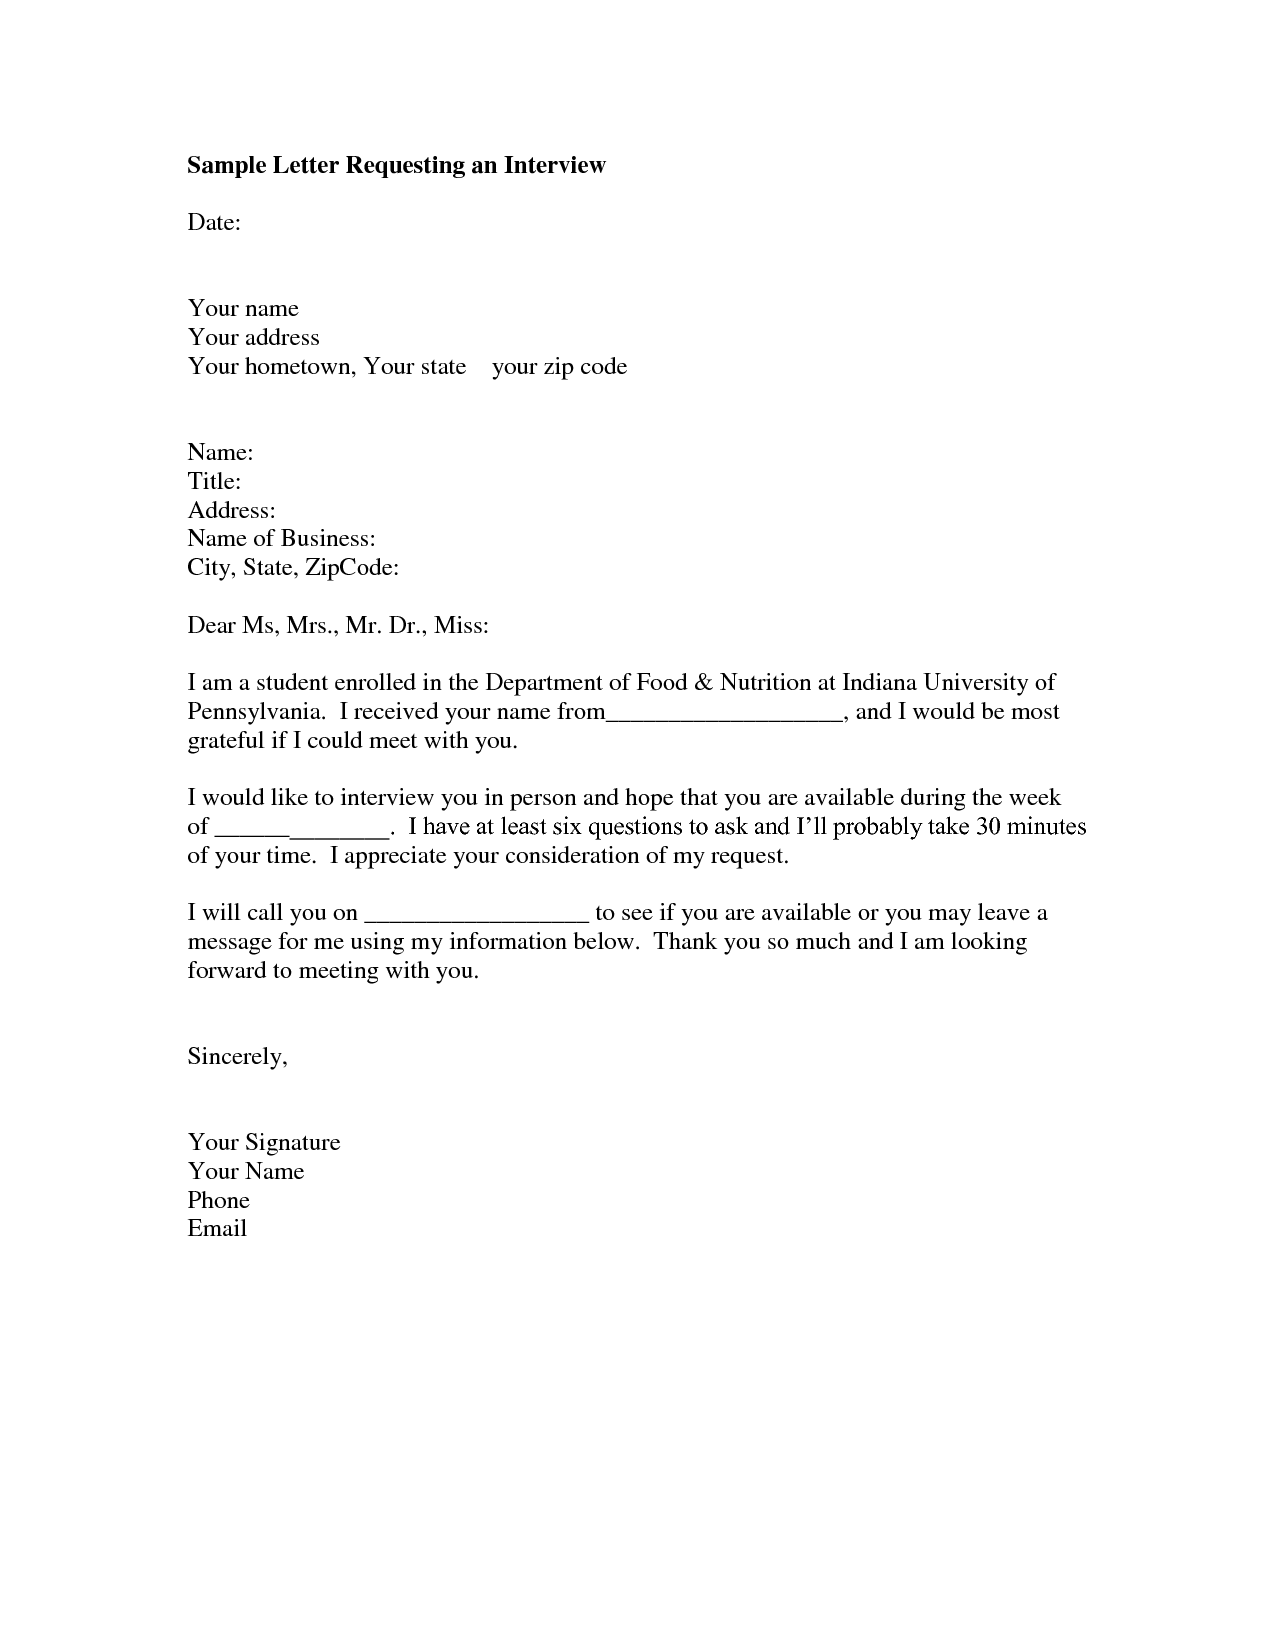 INTERVIEW REQUEST LETTER   Sample Format Of A Letter You Can Use To Request  An Interview